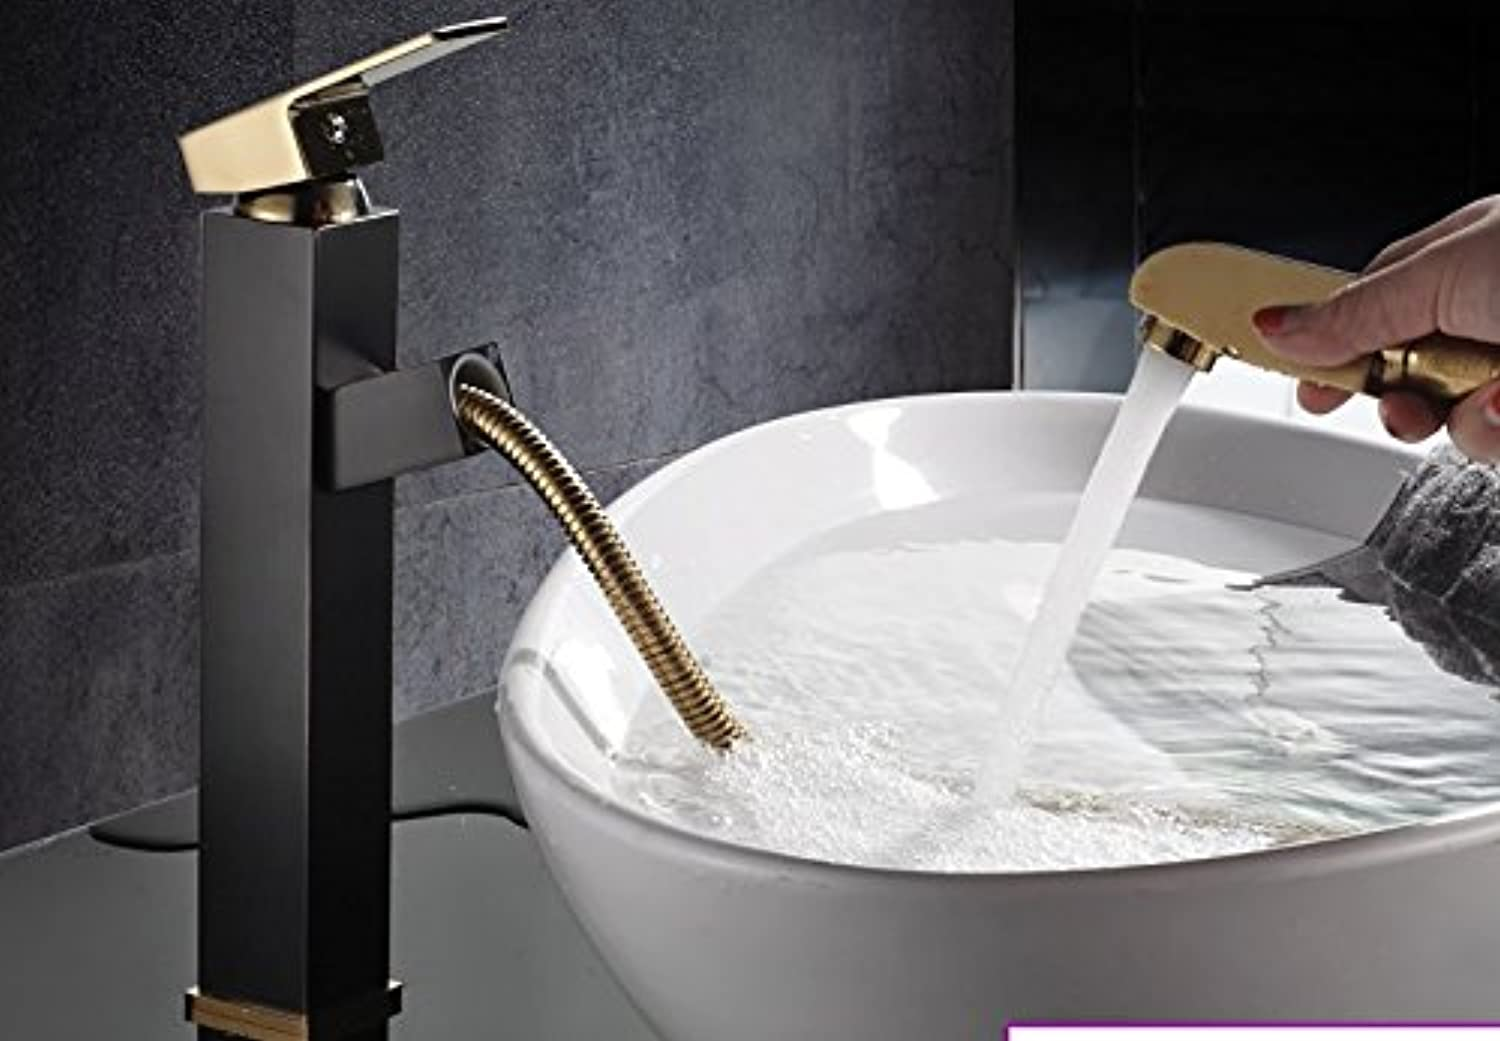 SCLOTHS Bathroom Basin Sink Mixer Tap Modern copper,hot and cold faucet,pull out,gold,s-773